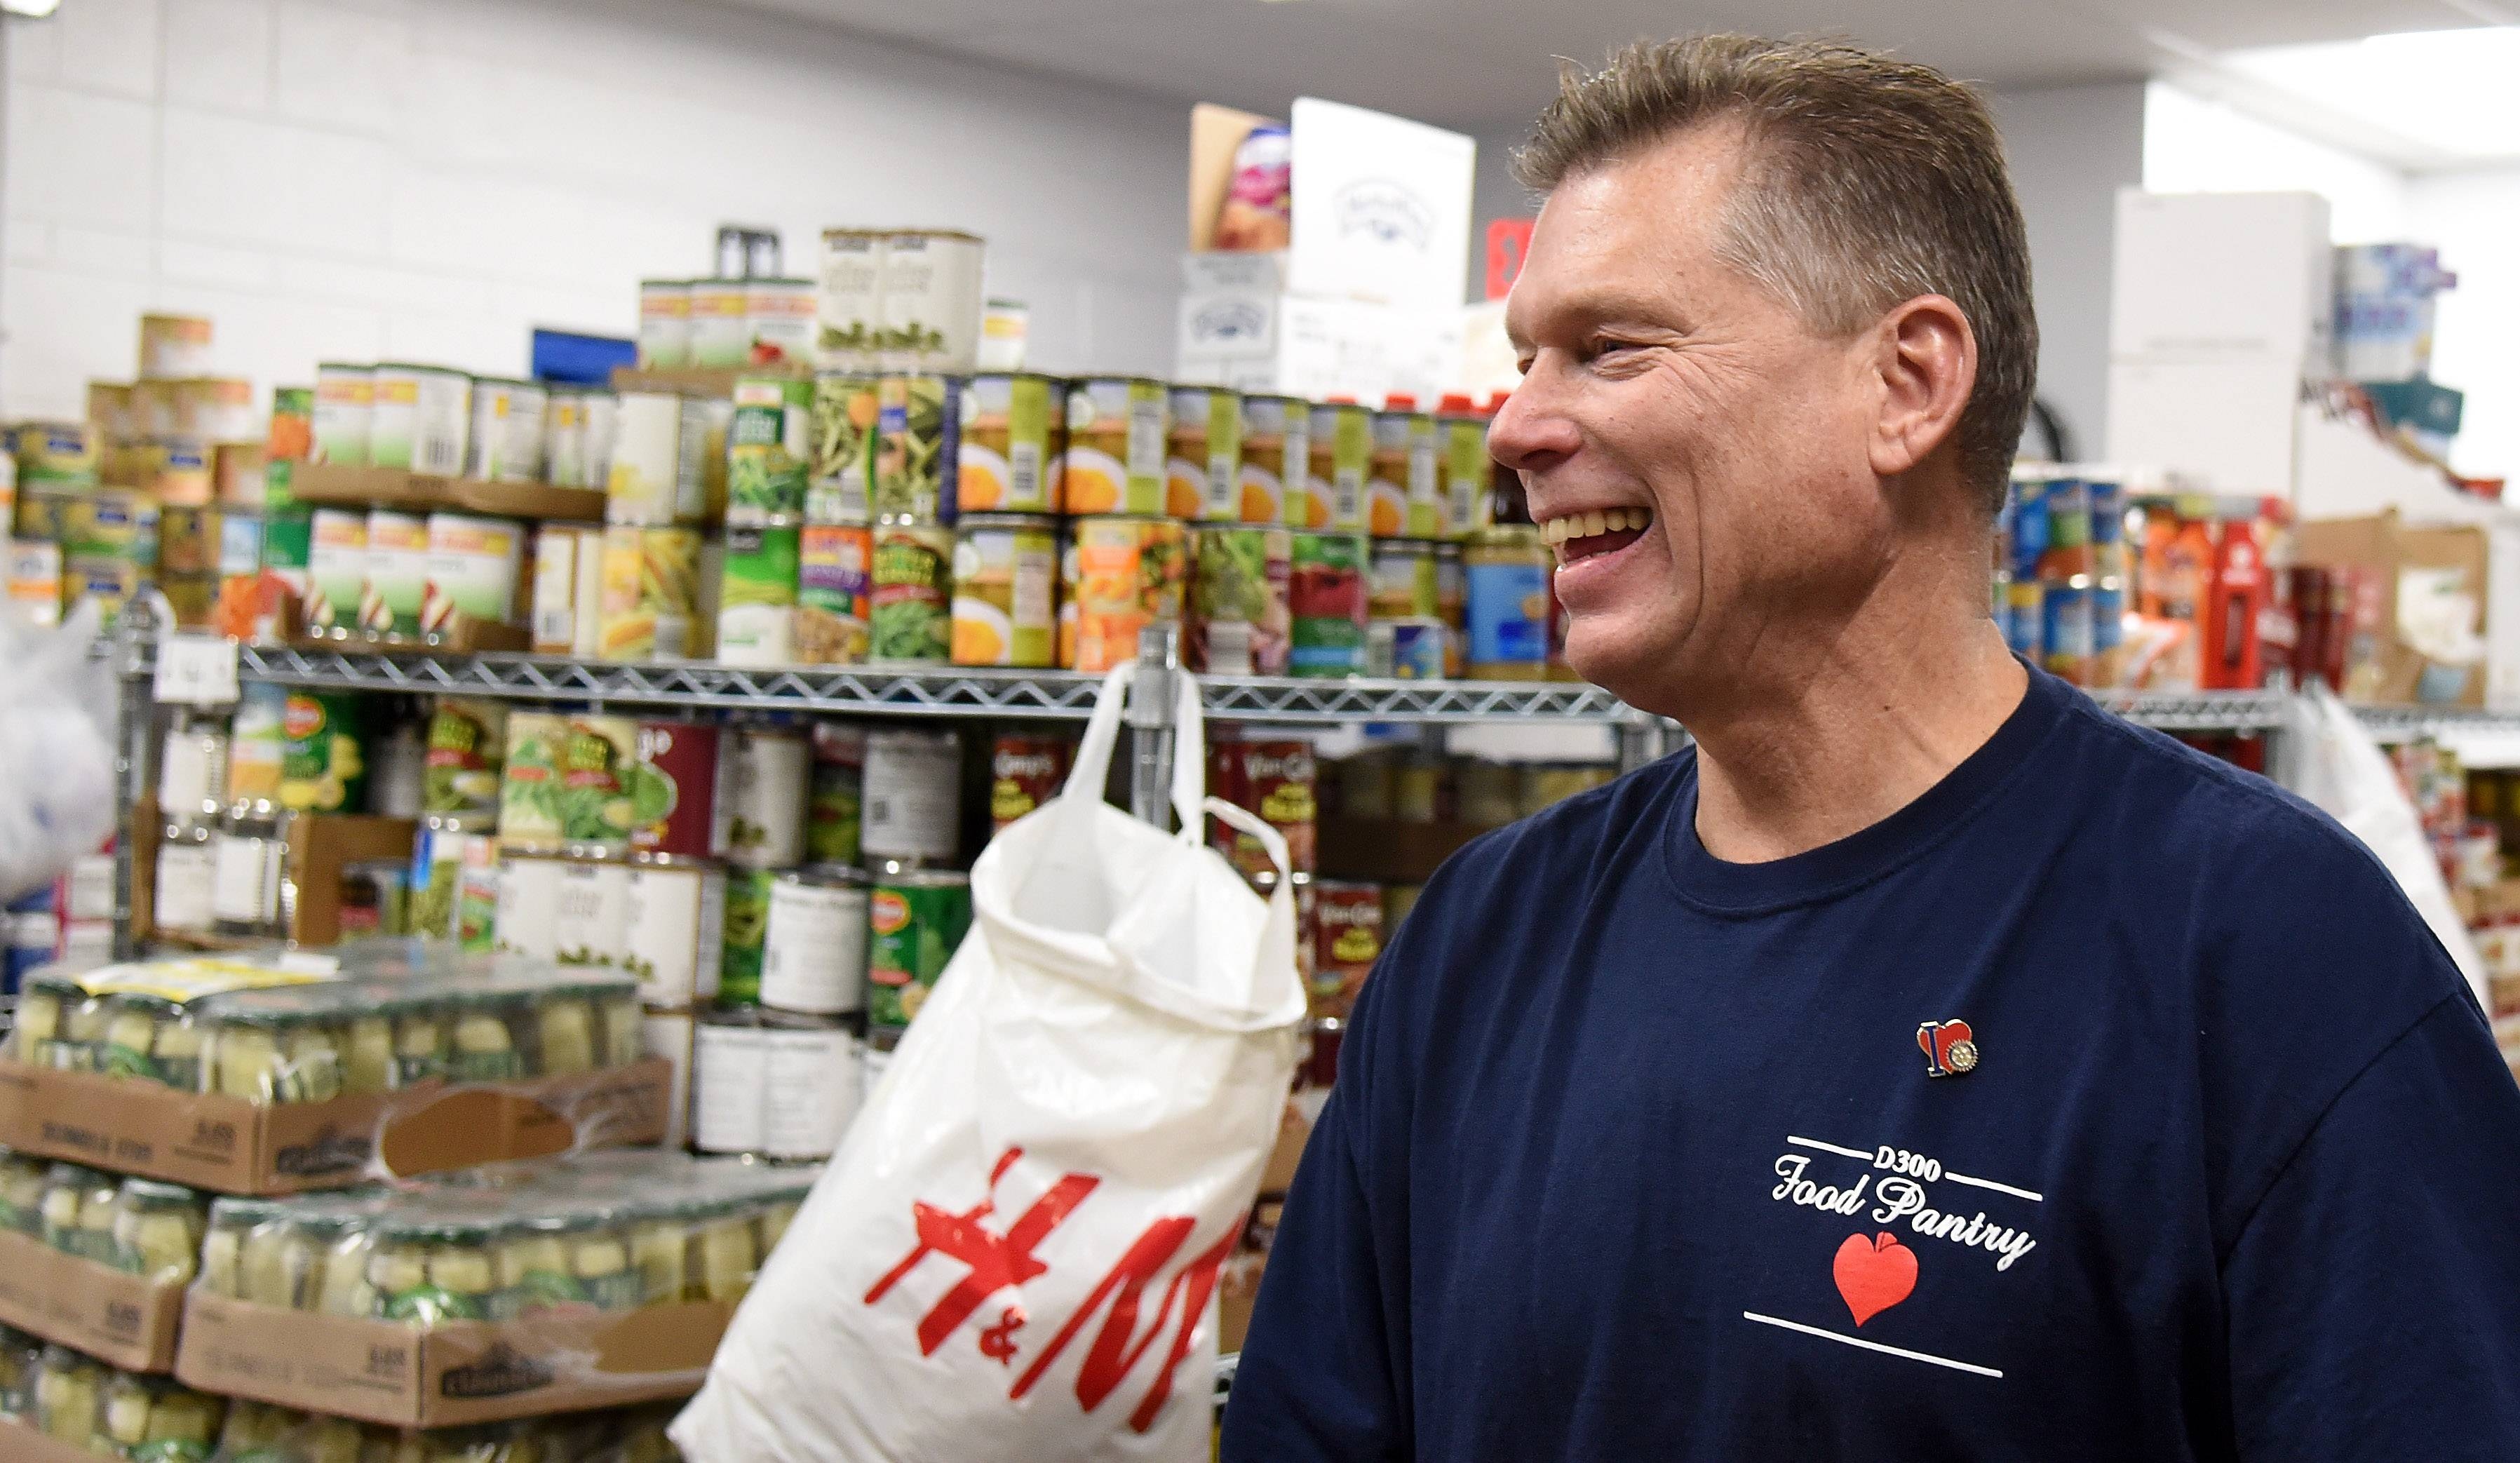 Craig Raddatz of Lake in the Hills laughs while talking with another volunteer at the District 300 Food Pantry at Carpentersville Middle School. Raddatz spearheaded the project that has provided food assistance to more than 2,000 people in the past year.